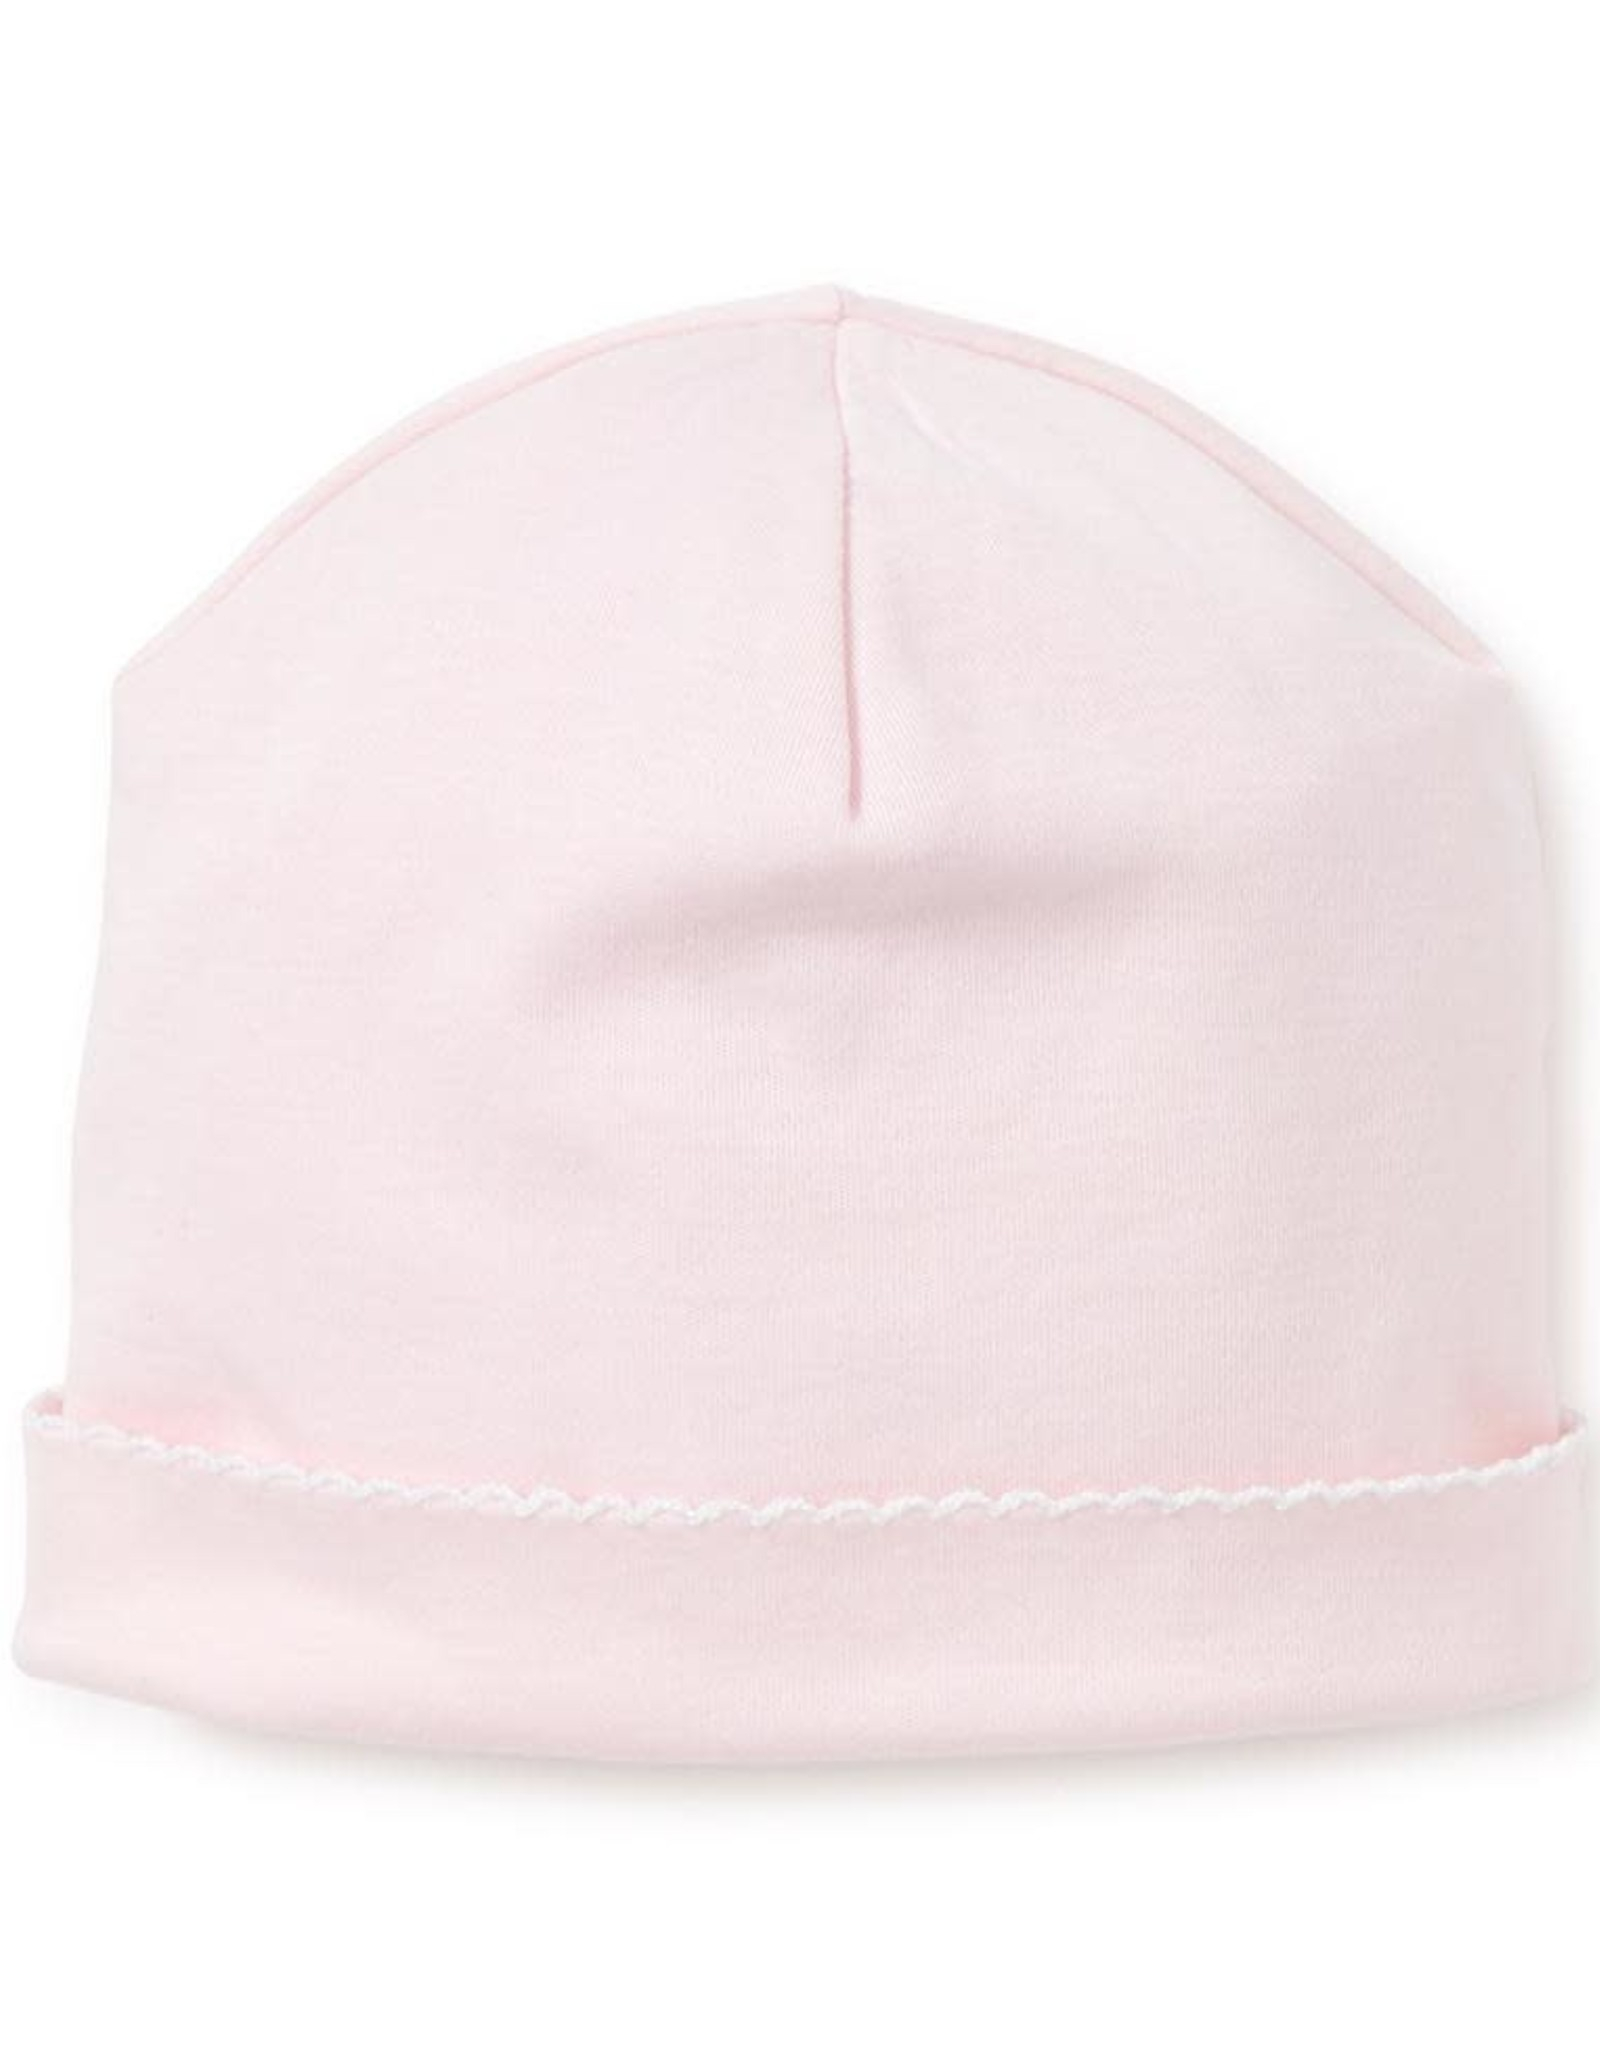 Kissy Kissy Basic Hat  Pink/White Stitching